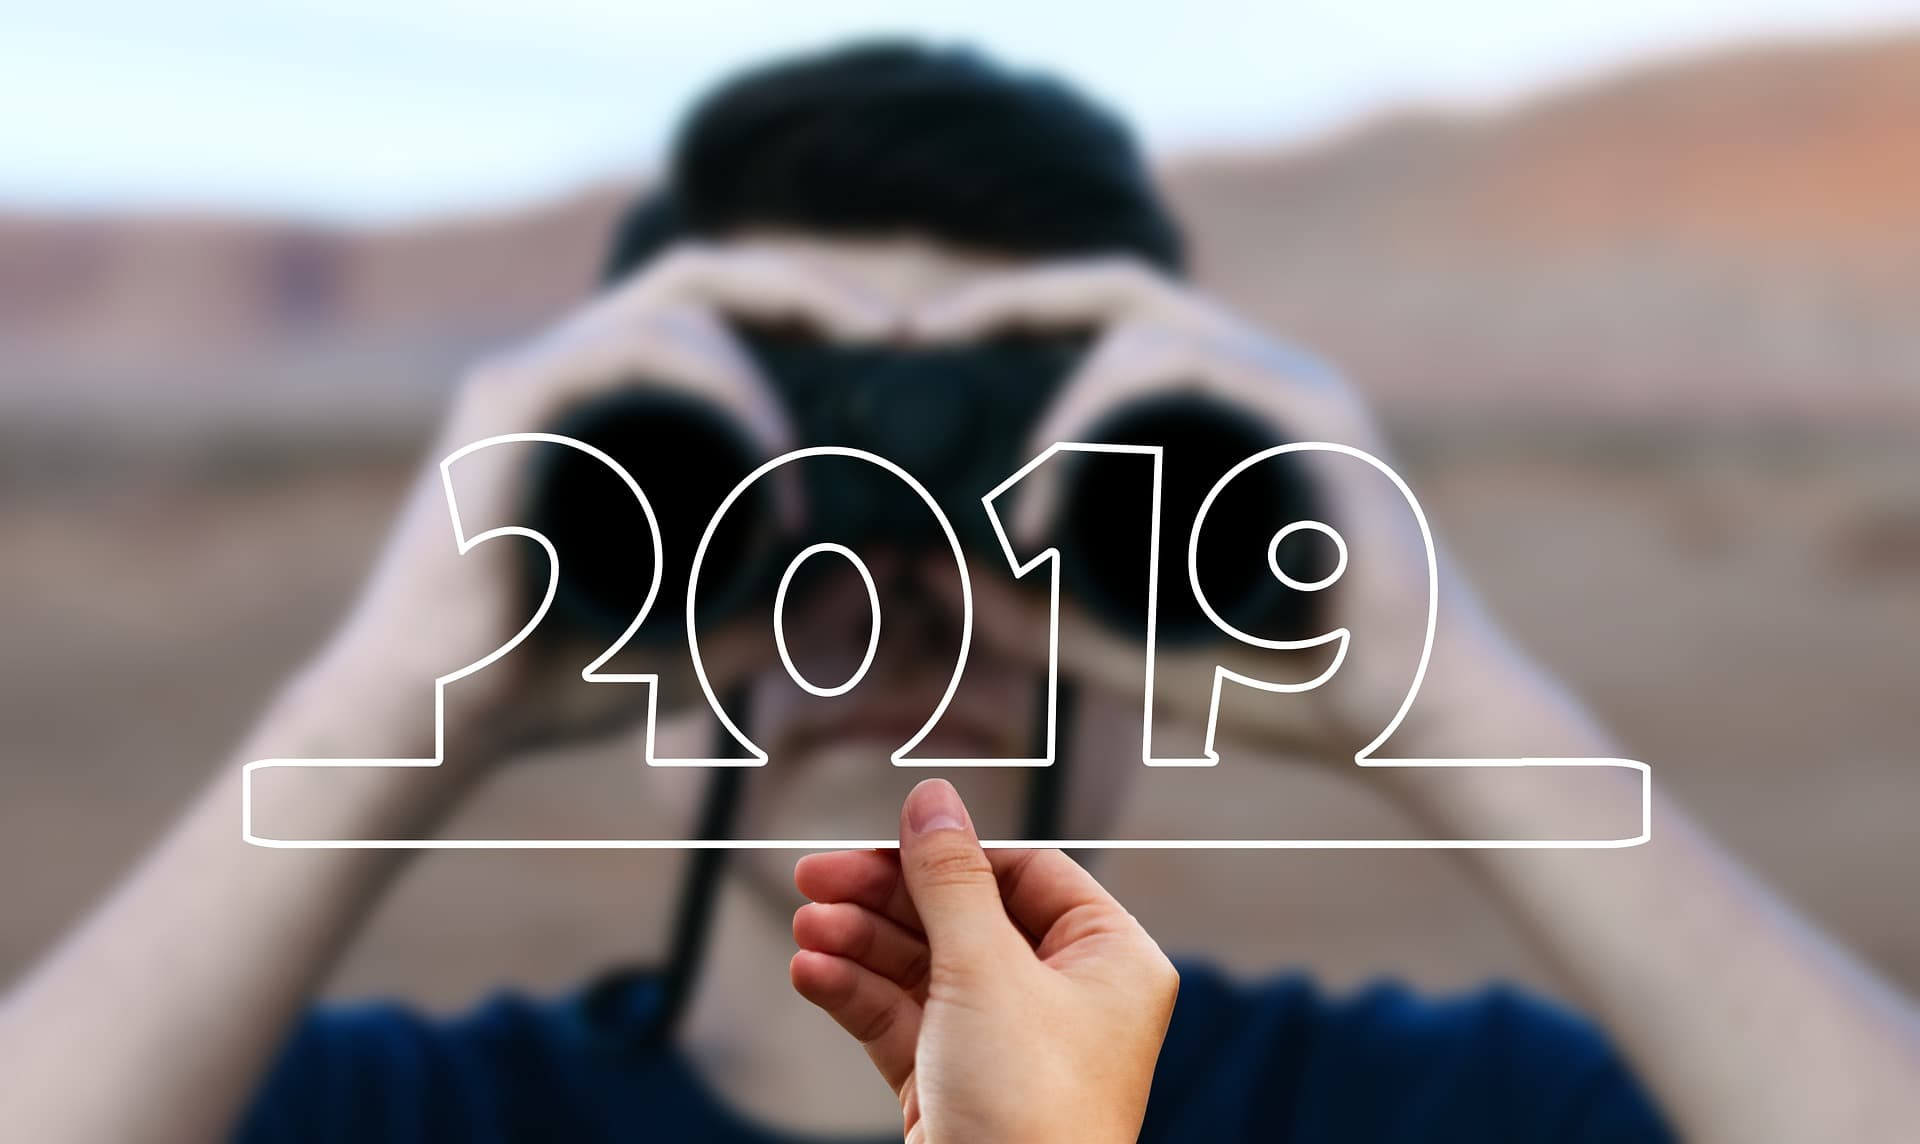 What will 2019 bring? Economy, politics and technology